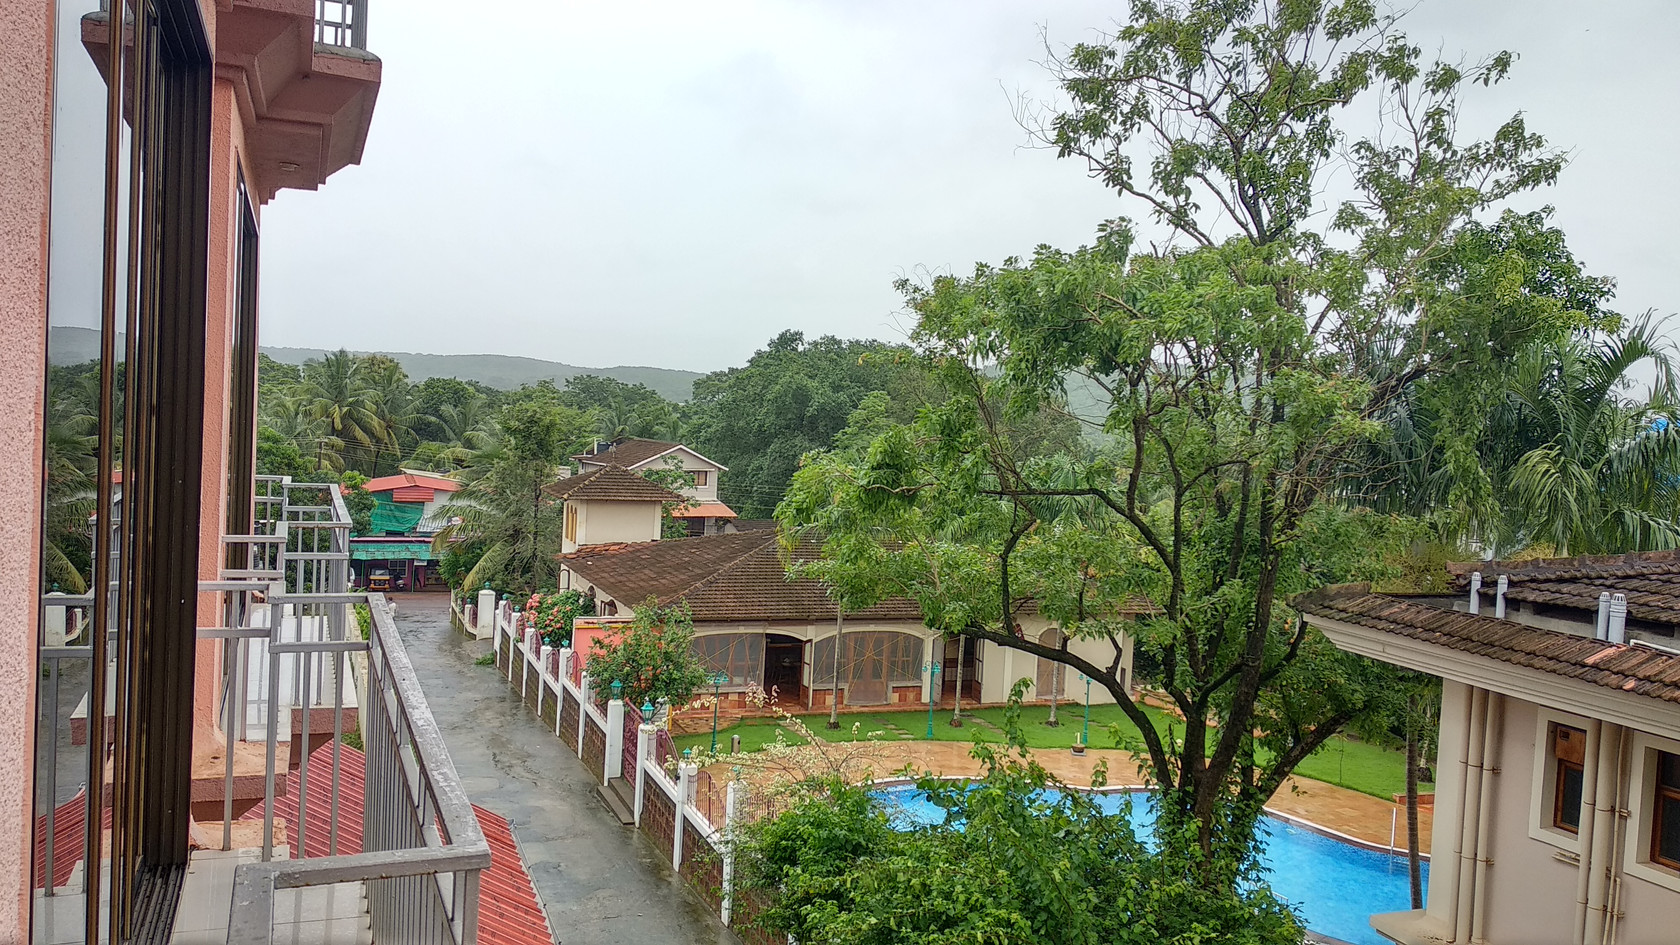 VIEW FROM BALCONY.jpg